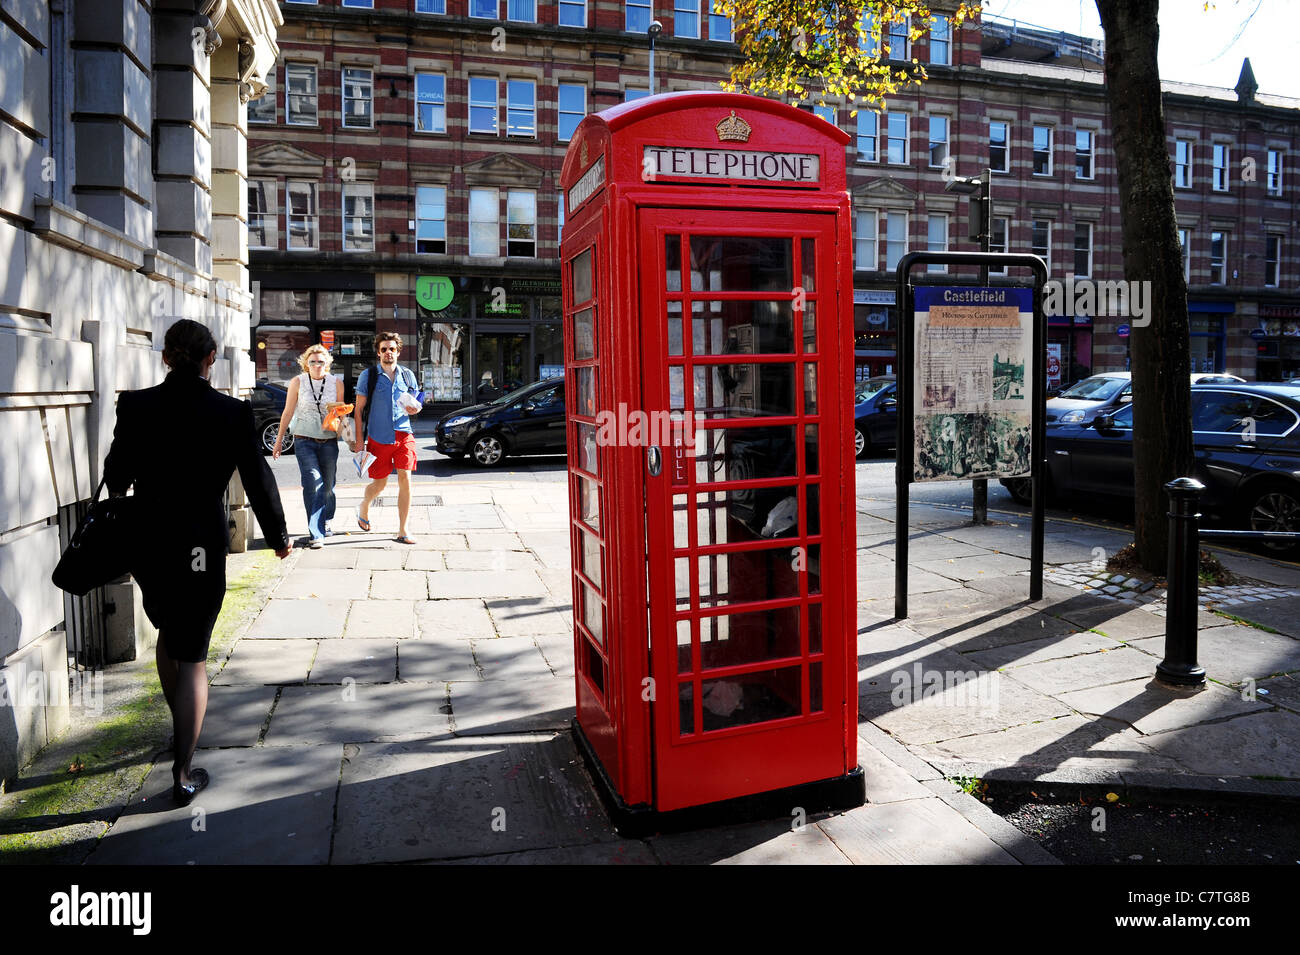 Traditional British red telephone box, St John's Street, Manchester, England. Picture by Paul Heyes, Wednesday - Stock Image